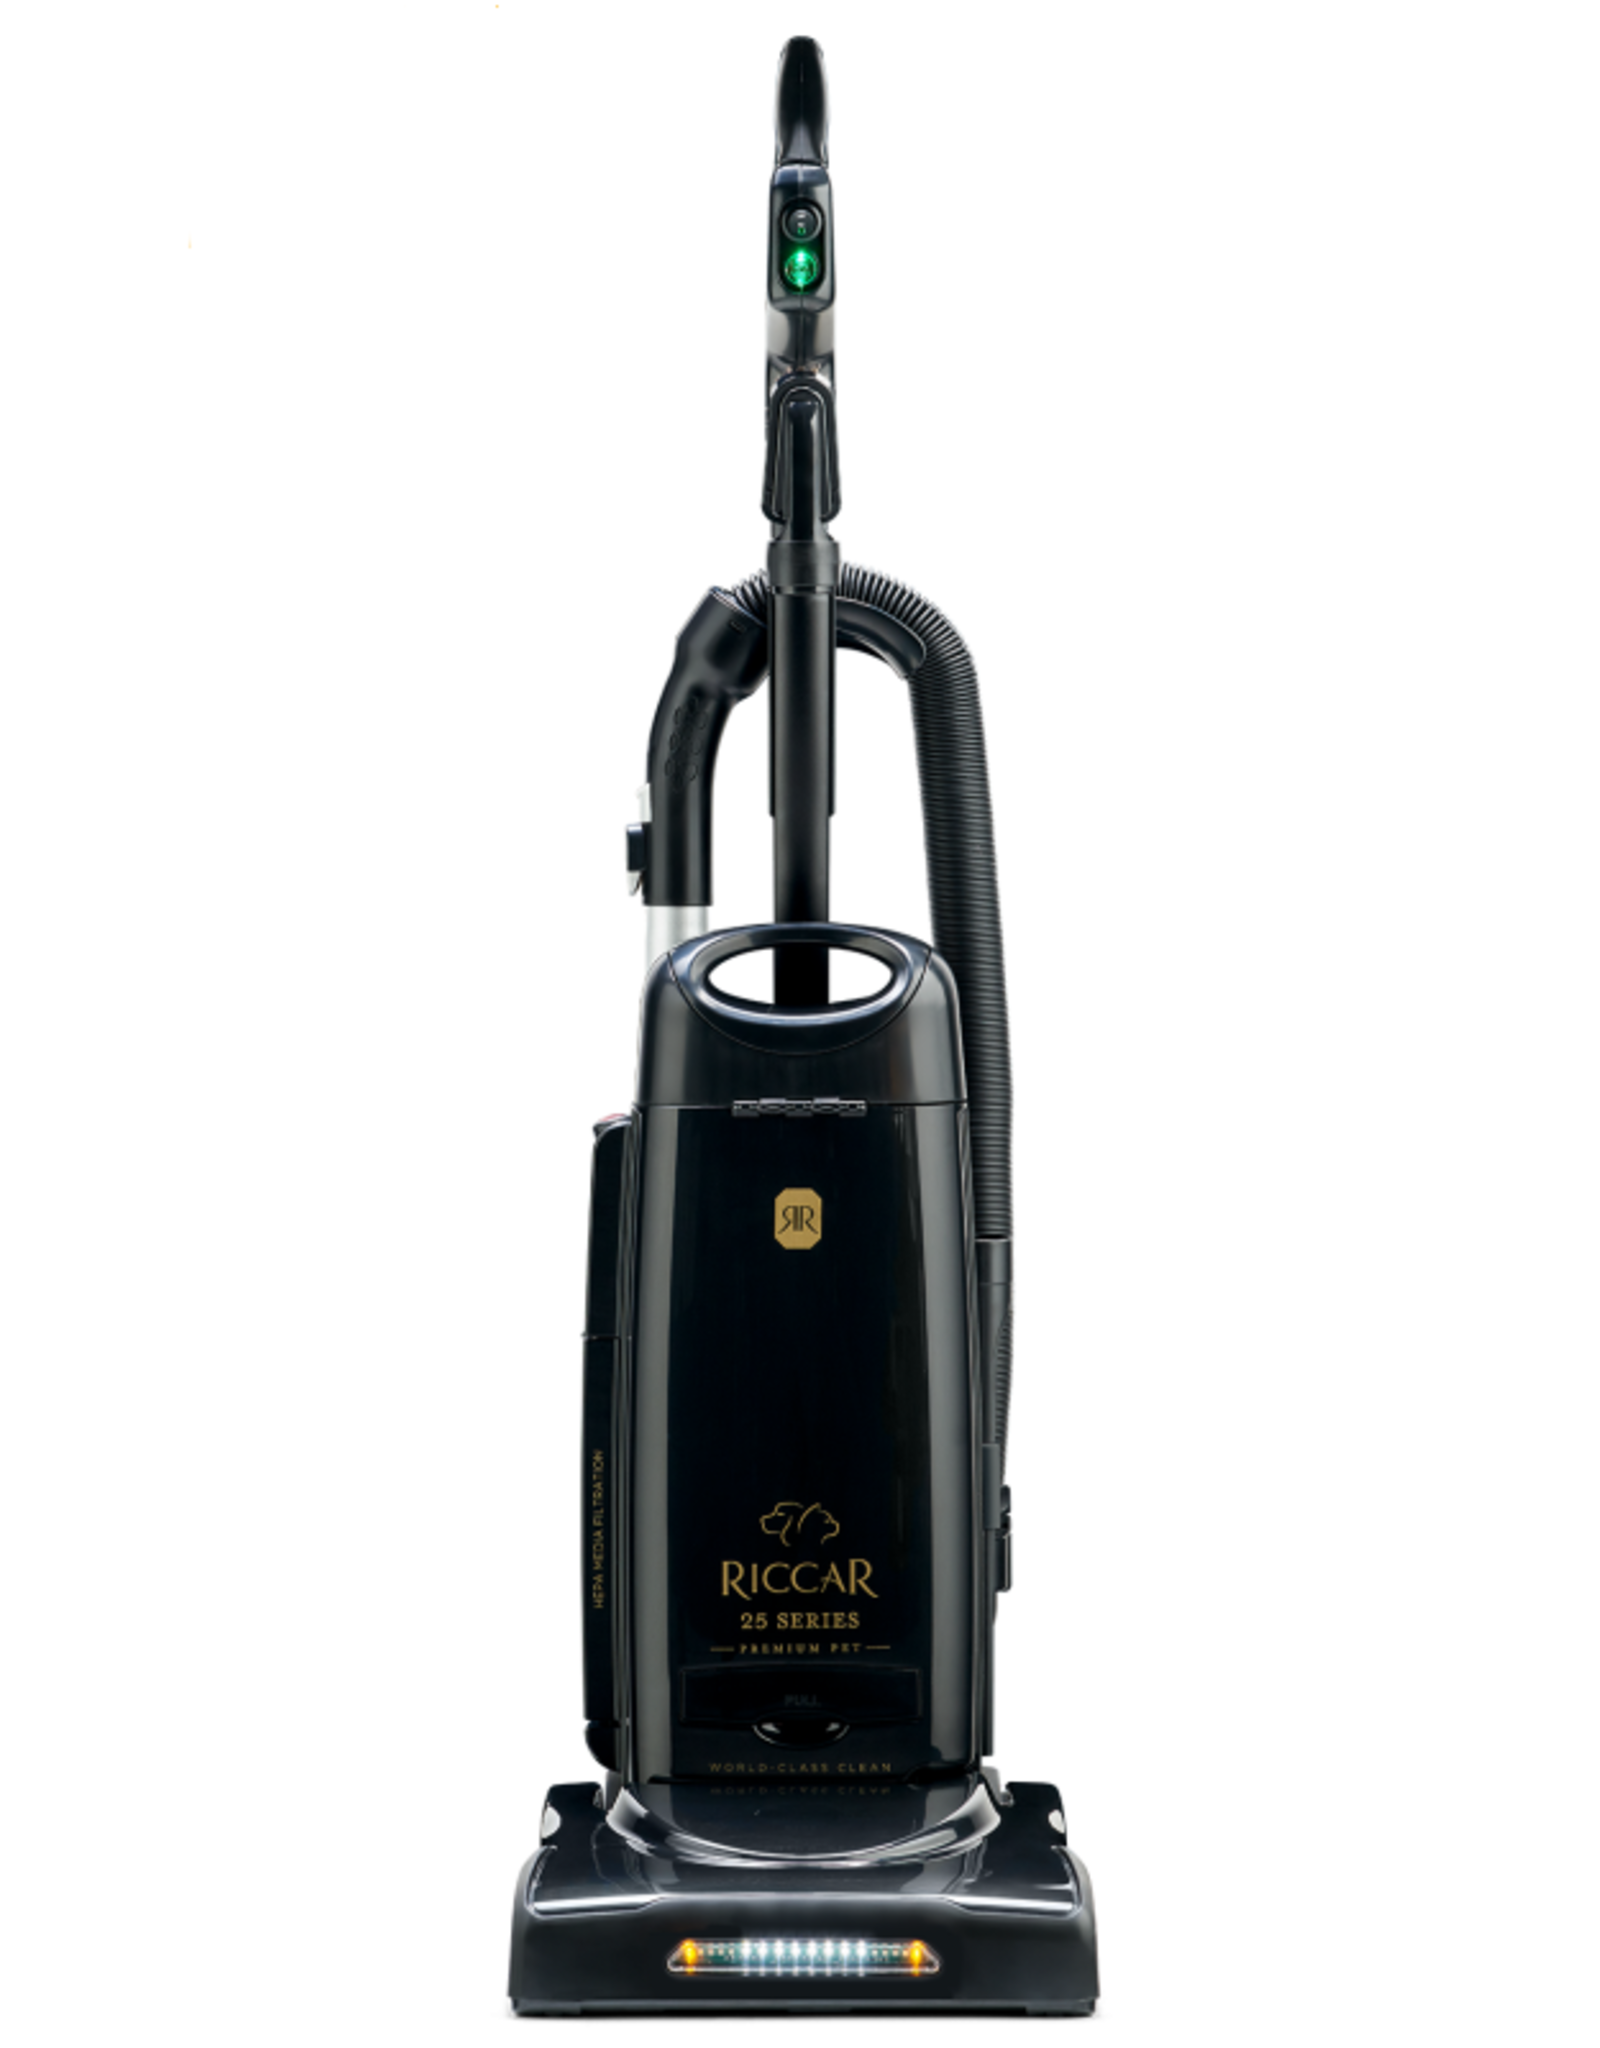 Riccar Riccar R25P Premium Pet Clean Air Upright Vacuum